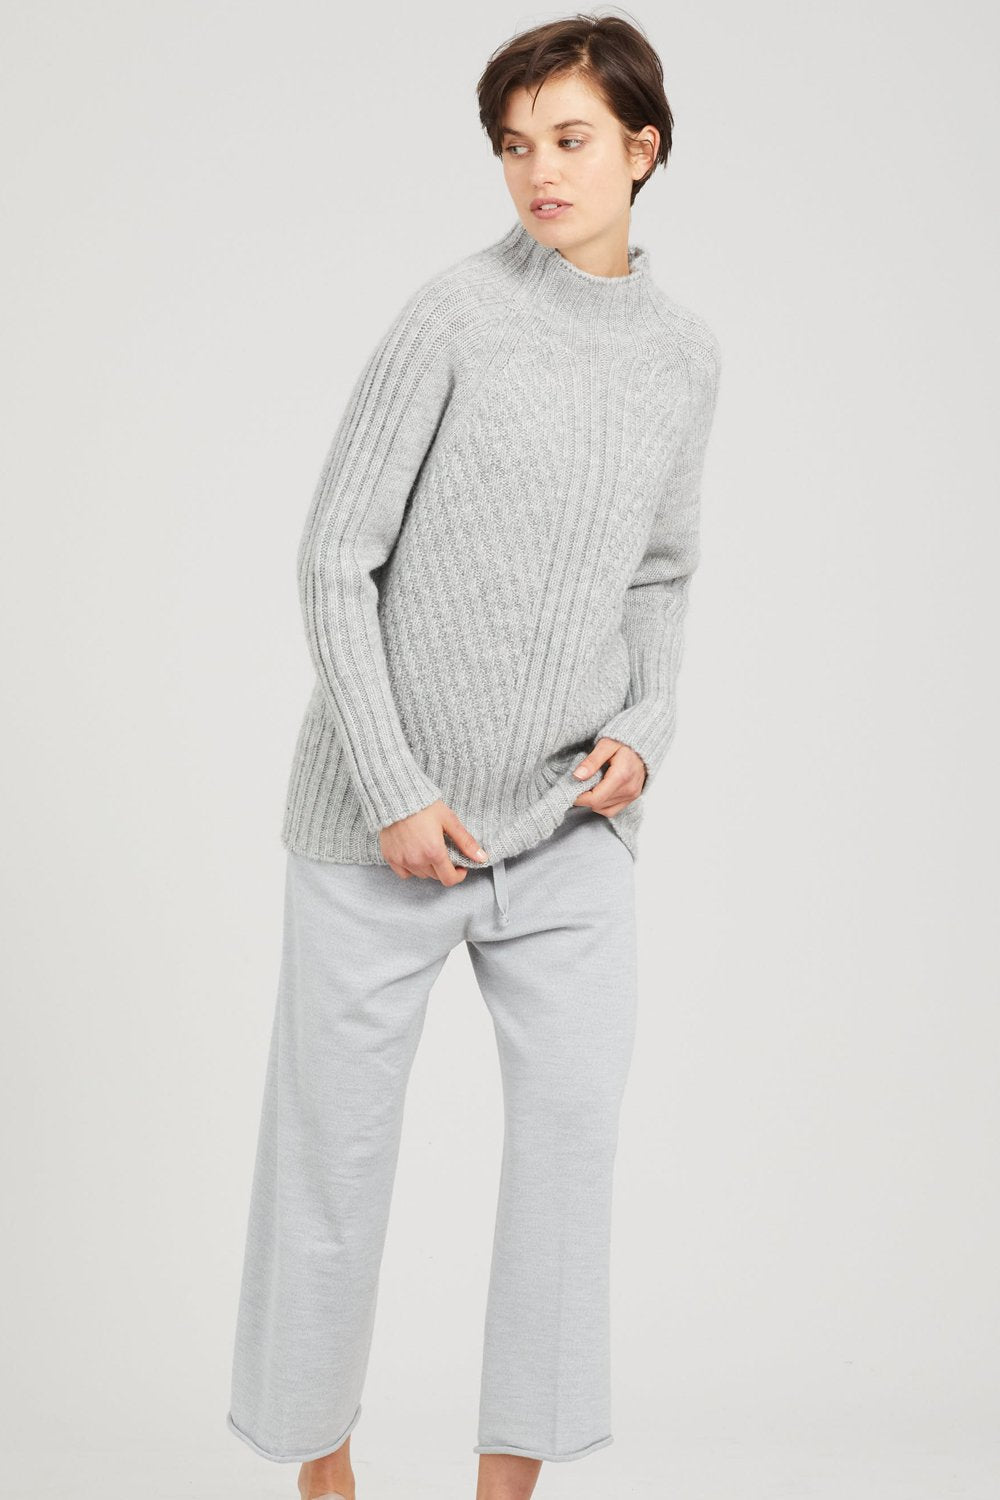 Standard Issue Alpaca Ray Jumper | Shop at Wallace & Gibbs NZ